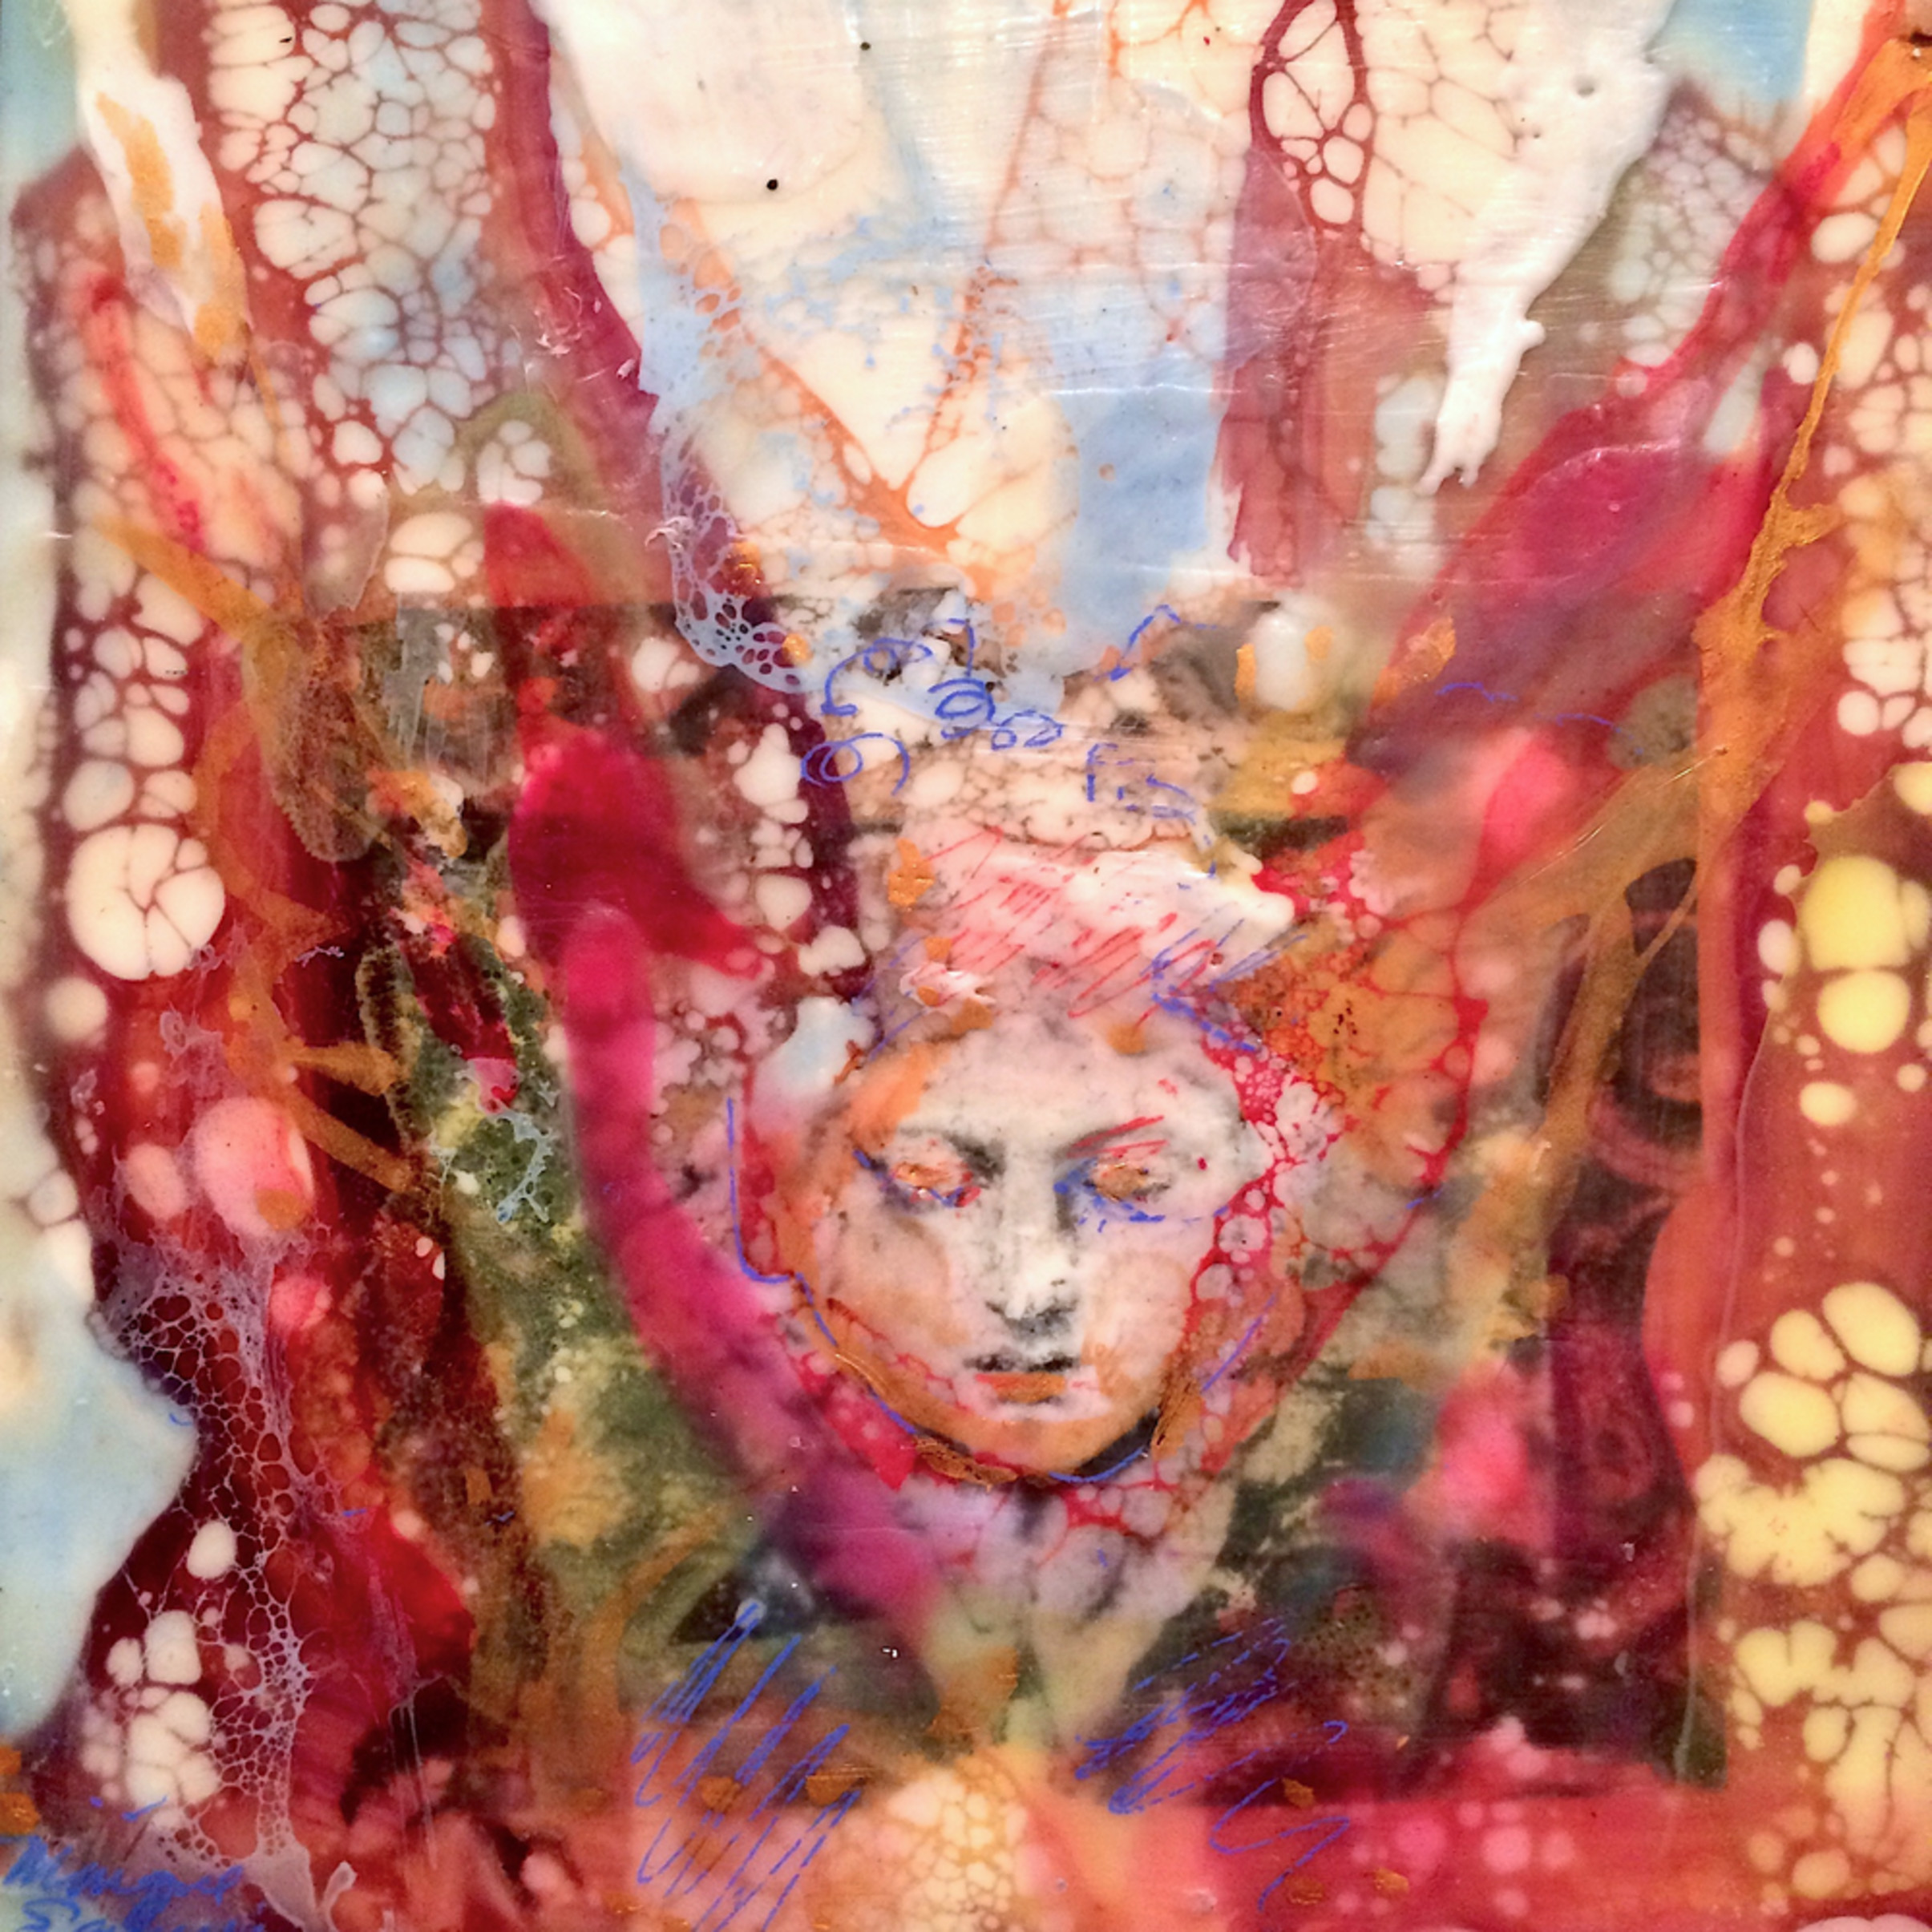 Love conquers 2 encaustic wax and mixed media on panel 6x6 wnm5hd